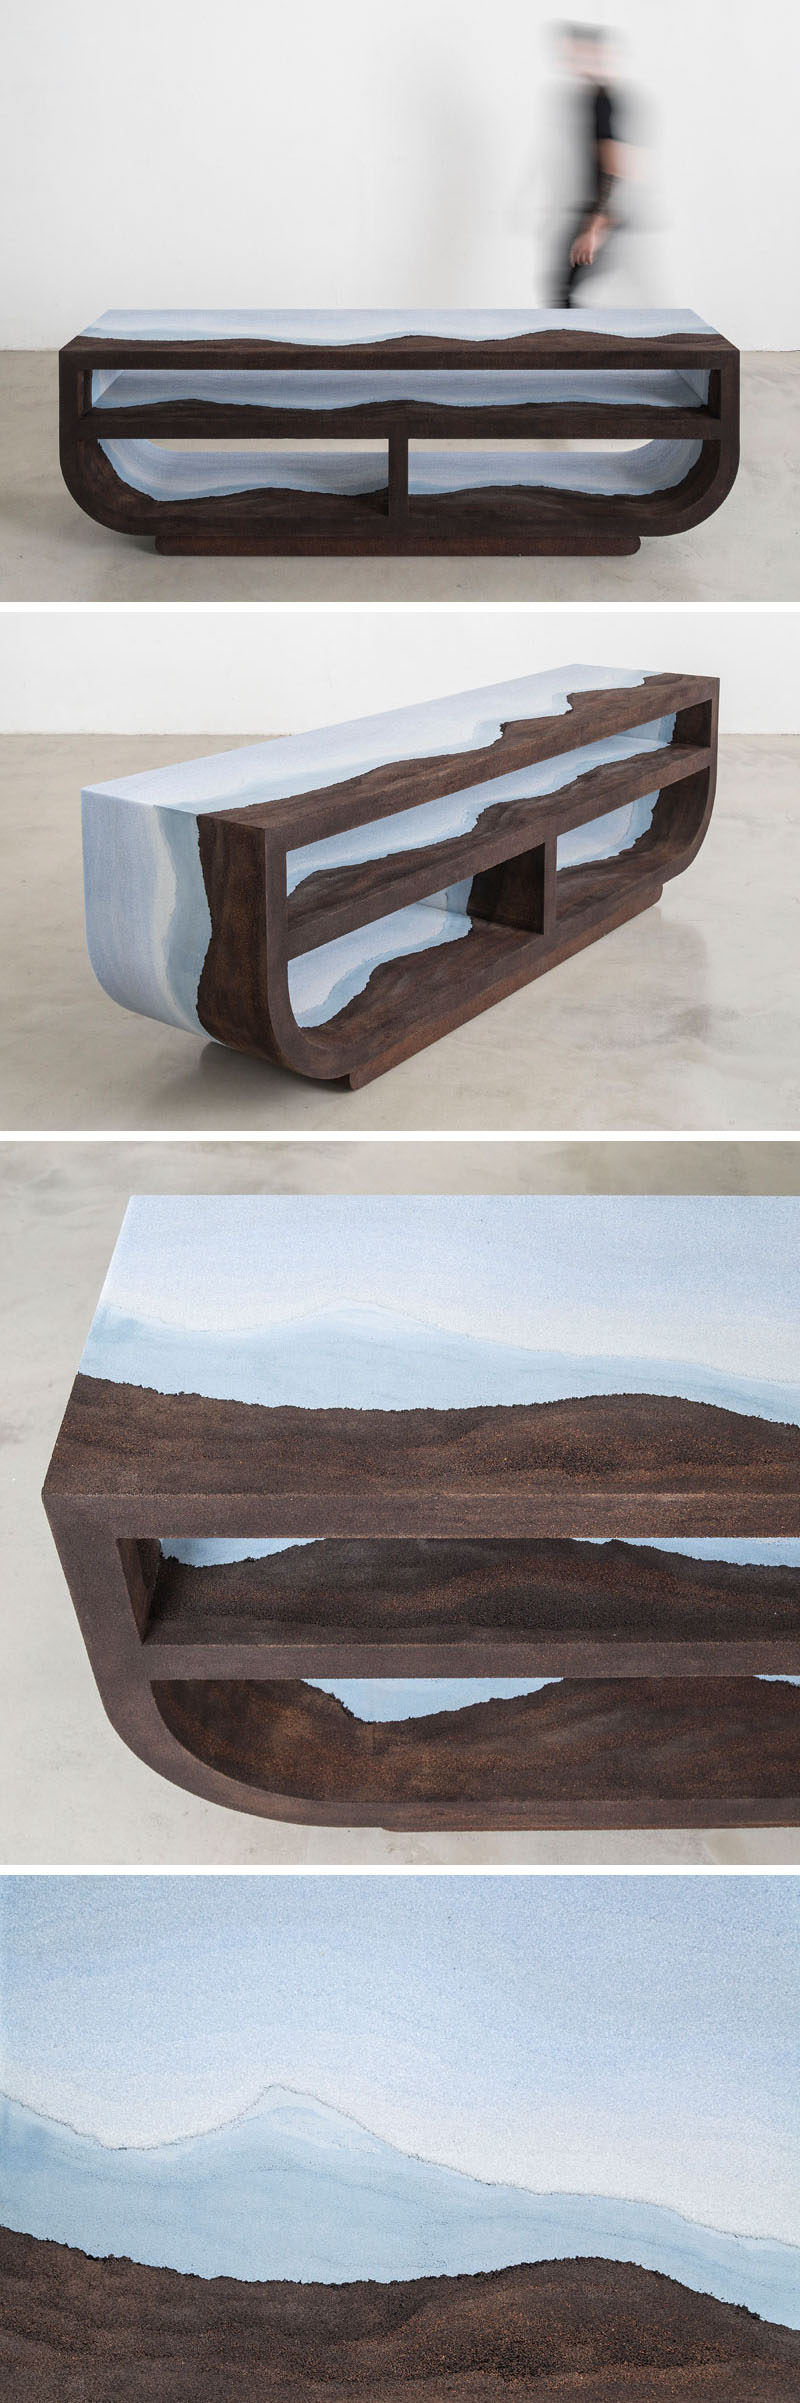 Designer Fernando Mastrangelo has created the Escape Collection, a group of modern furniture pieces, like this credenza, that are made using hand-dyed sand and silica to create simple forms that look like a three-dimensional landscape painting.